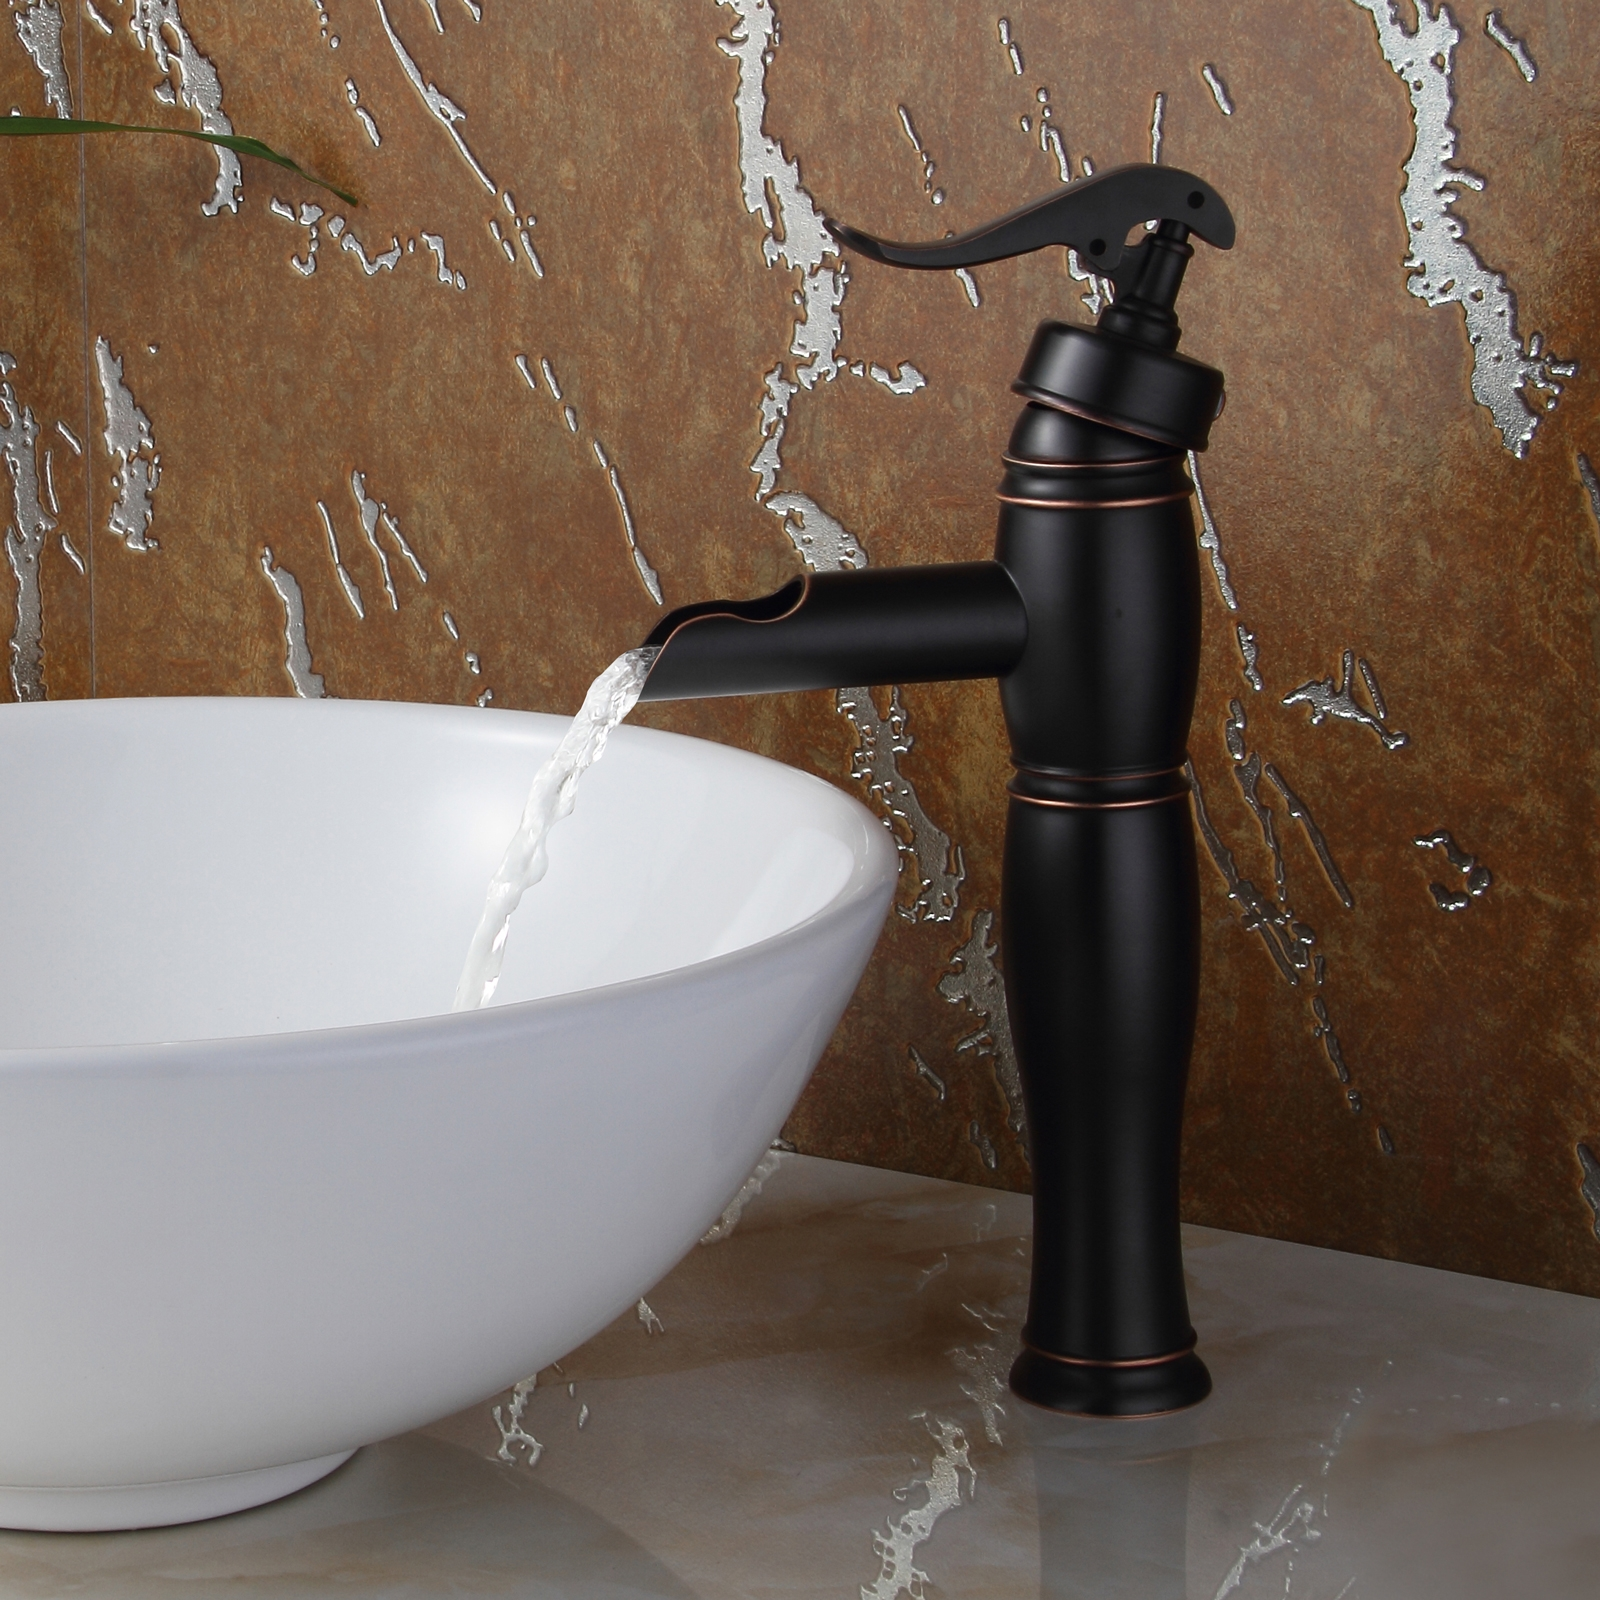 Ideas, bathroom faucets elitehomeproducts intended for sizing 1600 x 1600  .